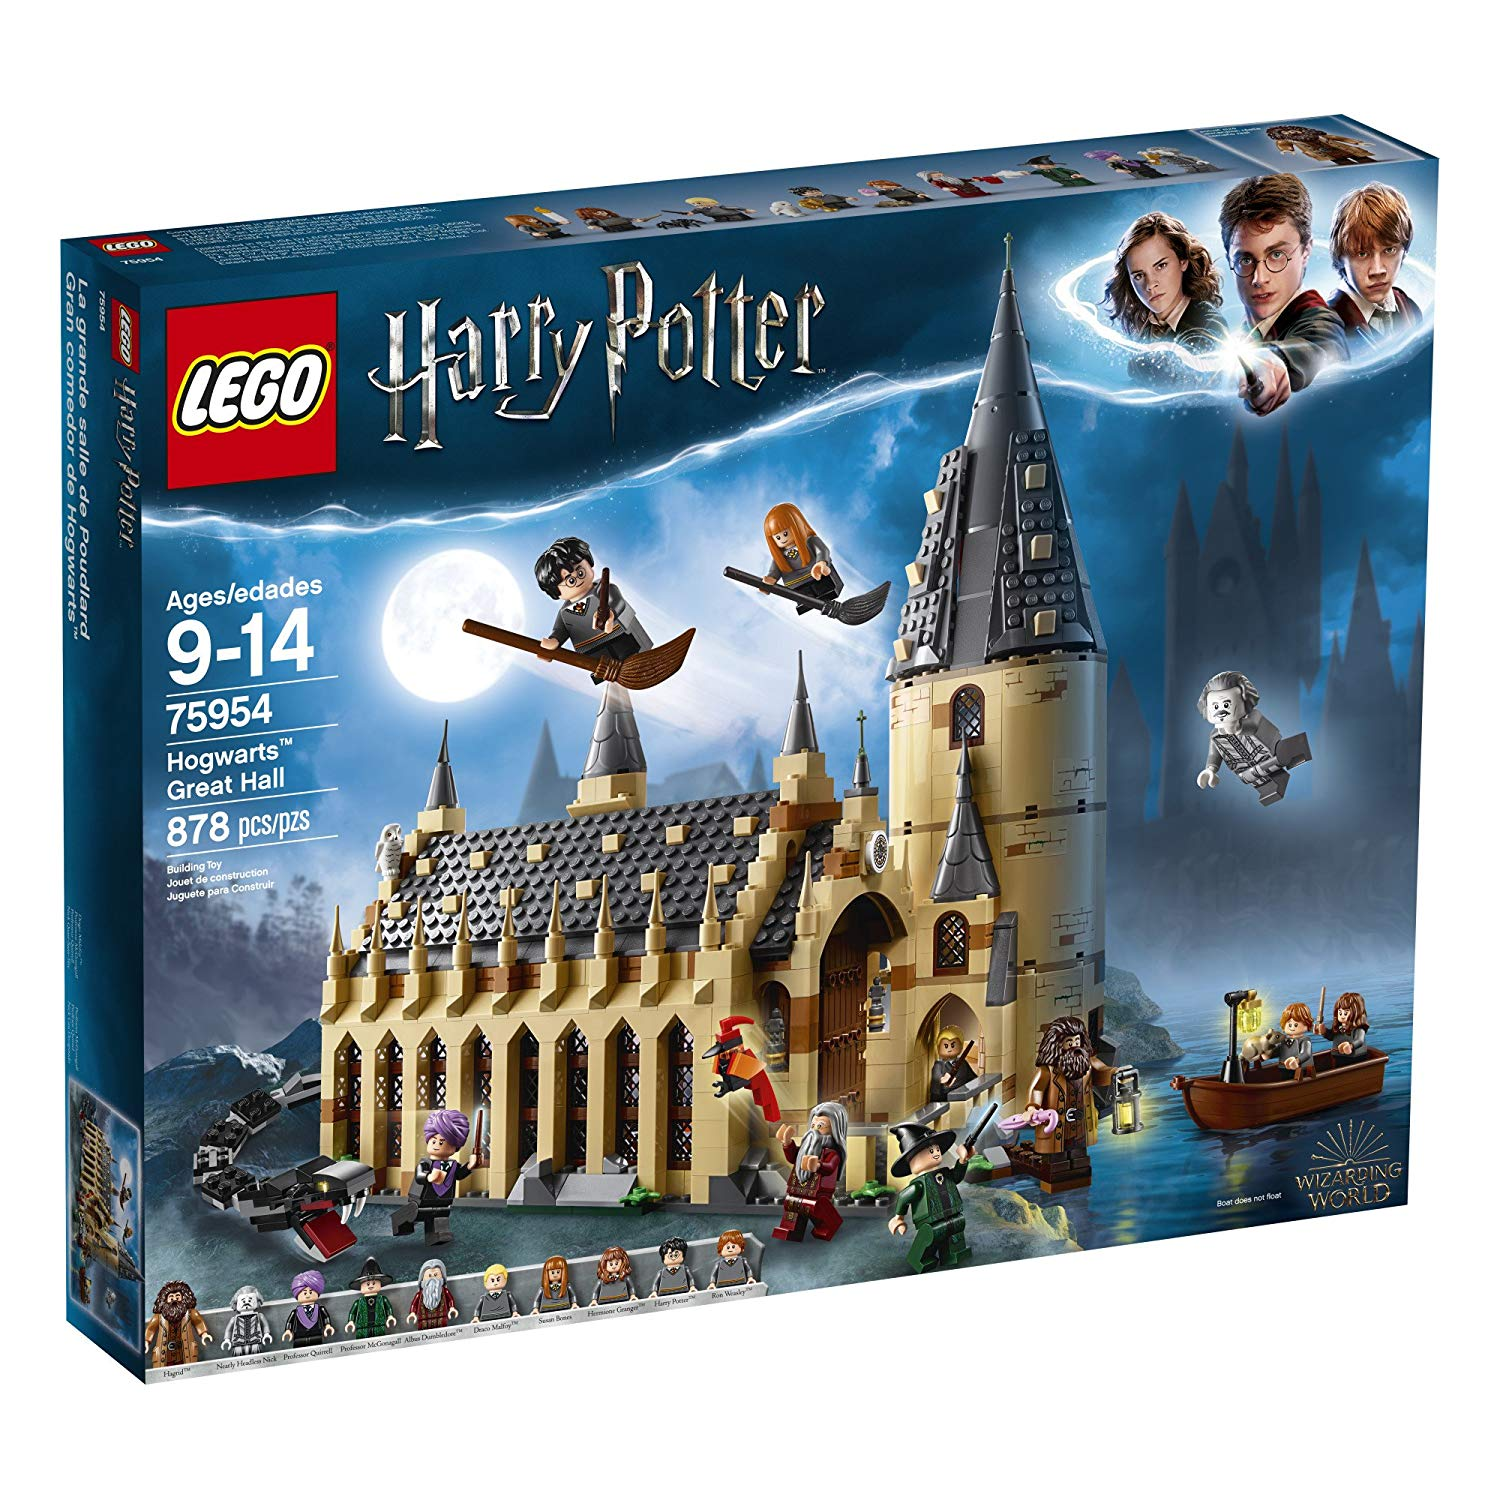 Harry Potter Lego.jpg